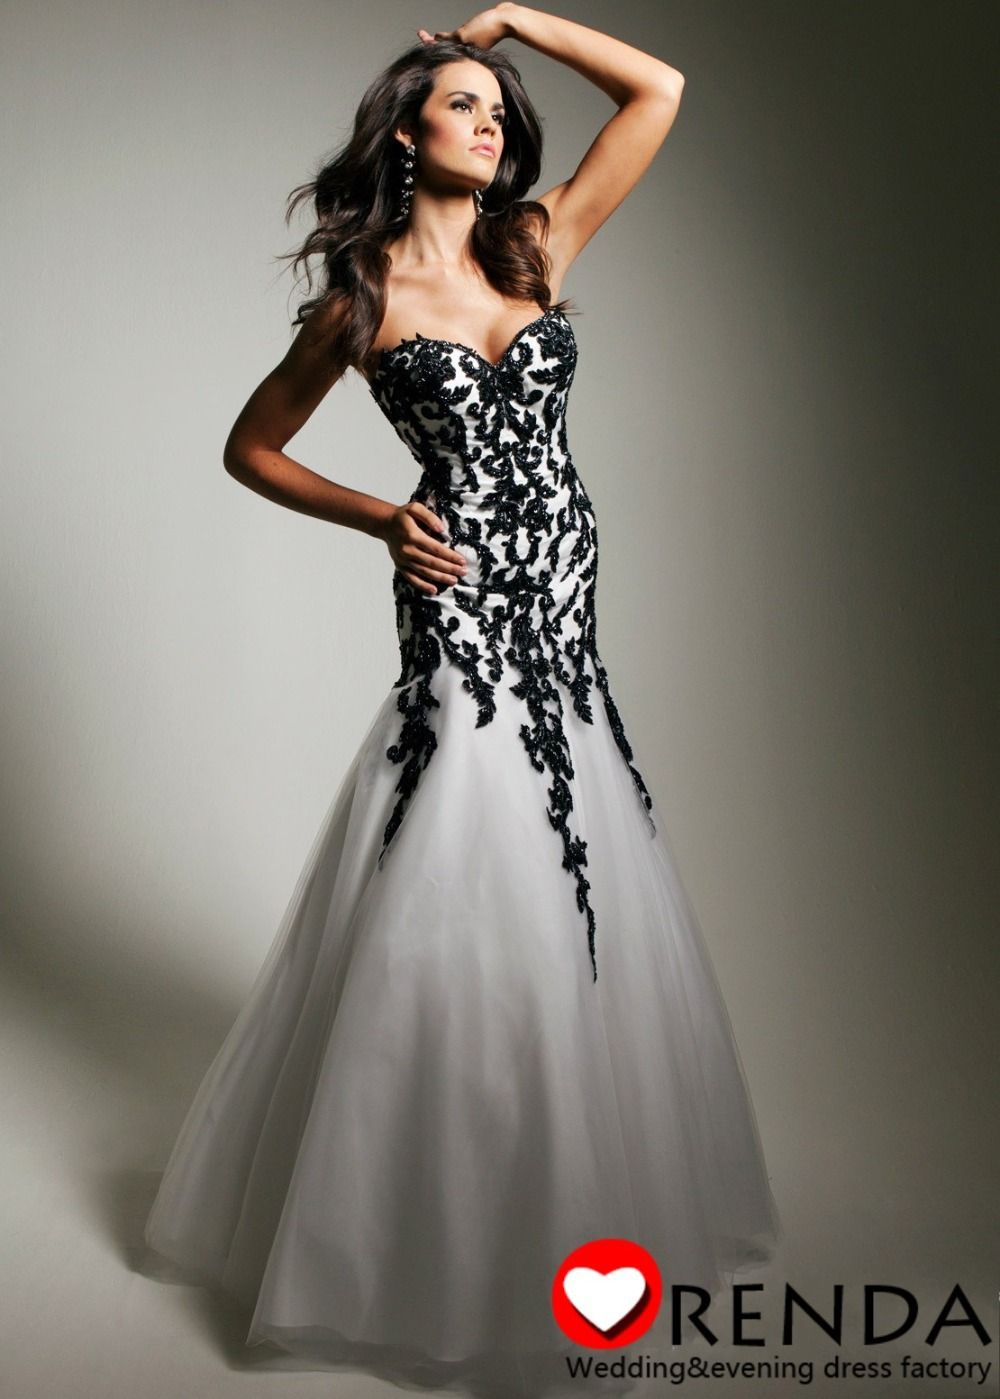 red mermaid prom dresses lace and sequins | ... Lace-With-Black-Beads-Sequined-Mermaid-Sexy-Tony-Bowls-Evening-Prom